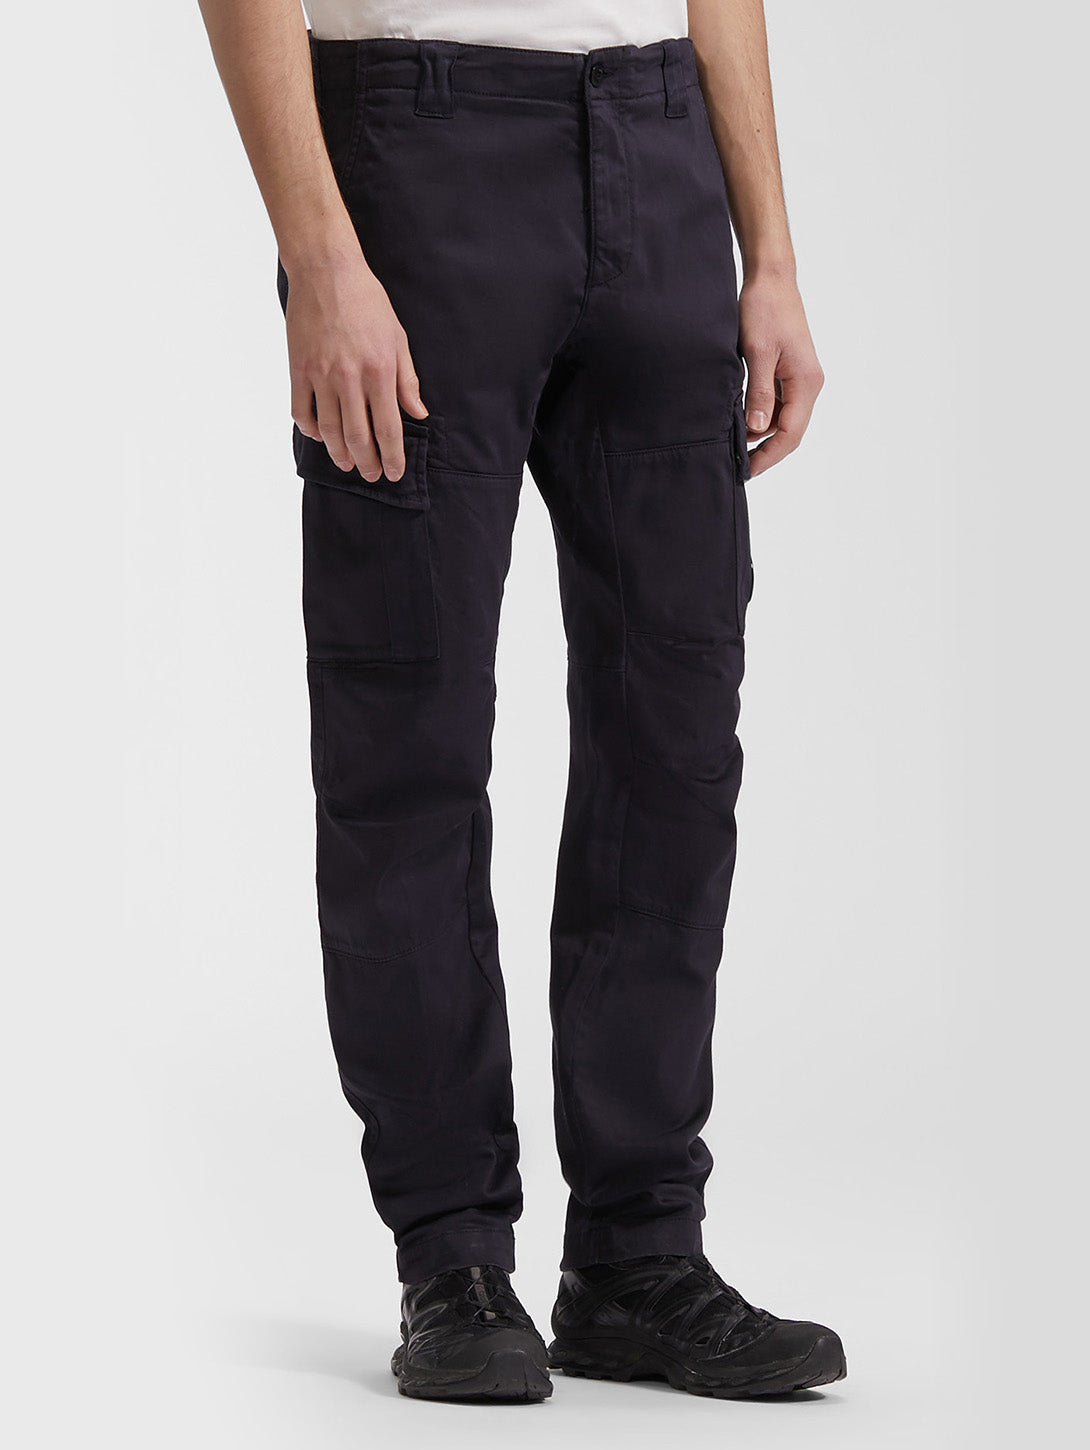 Raso Stretch Sateen Garment Dyed Cargo Pant - Total Eclipse-CP COMPANY-Over the Rainbow